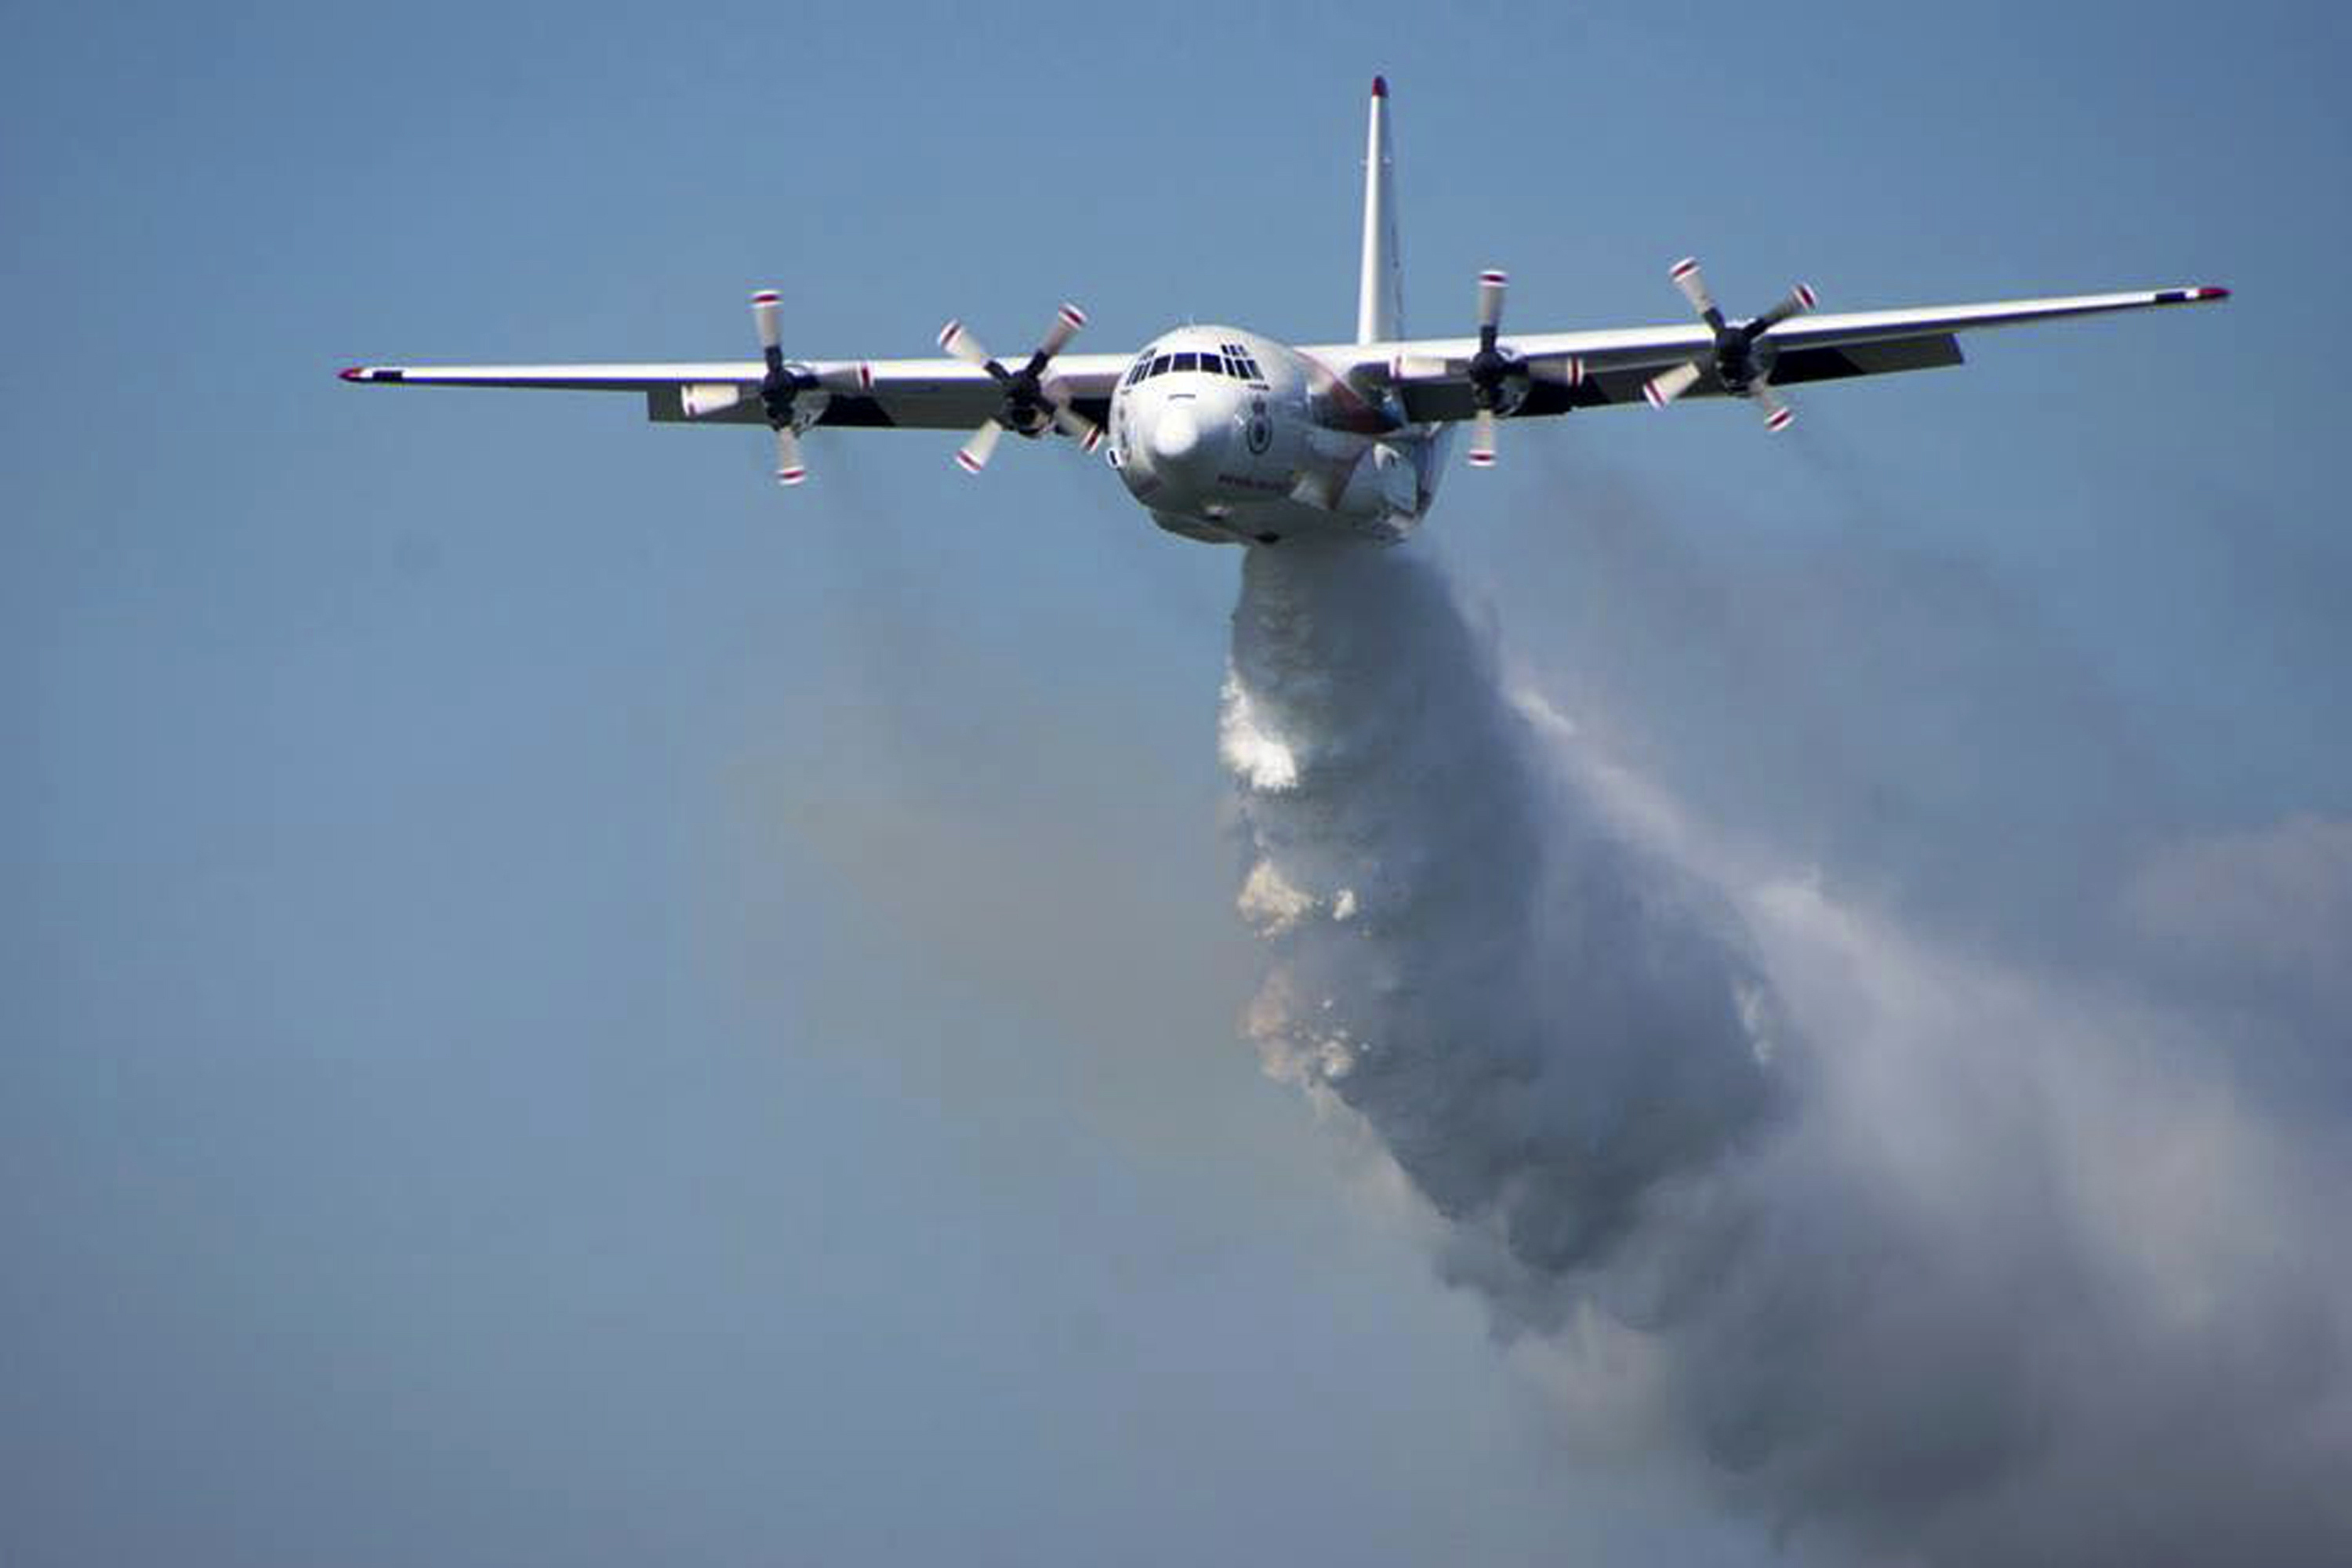 In this undated photo released from the Rural Fire Service, a C-130 Hercules plane called  Thor  drops water during a flight in Australia.